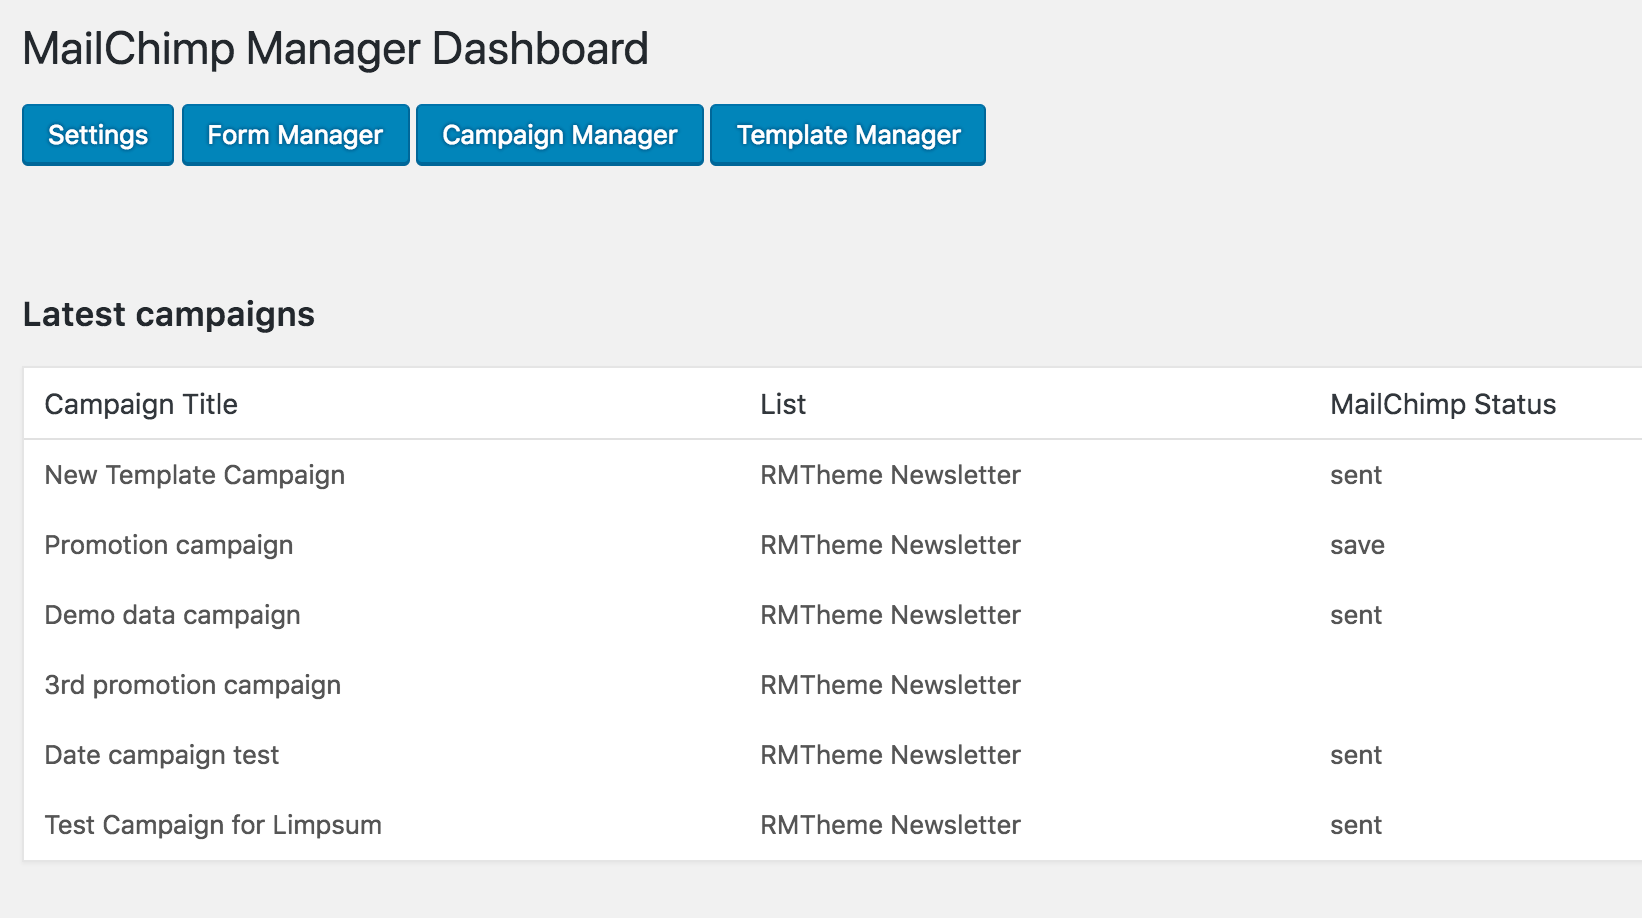 Mailchimp manager dashboard with latest campaign lists.